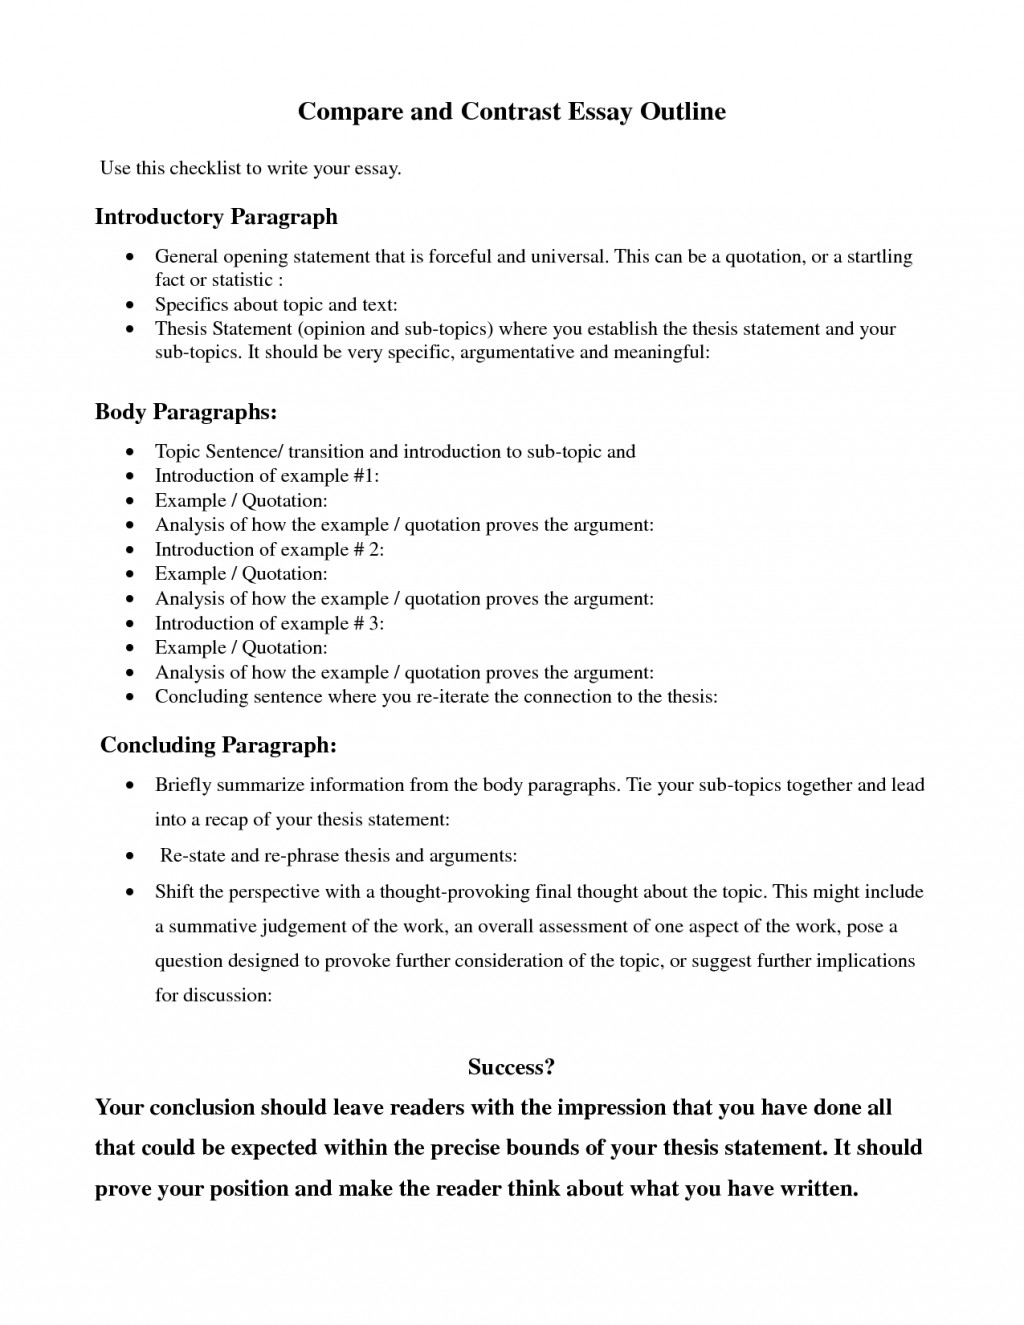 001 Essay Example Comparison Contrast Beautiful Compare Format College Graphic Organizer Pdf Examples Large